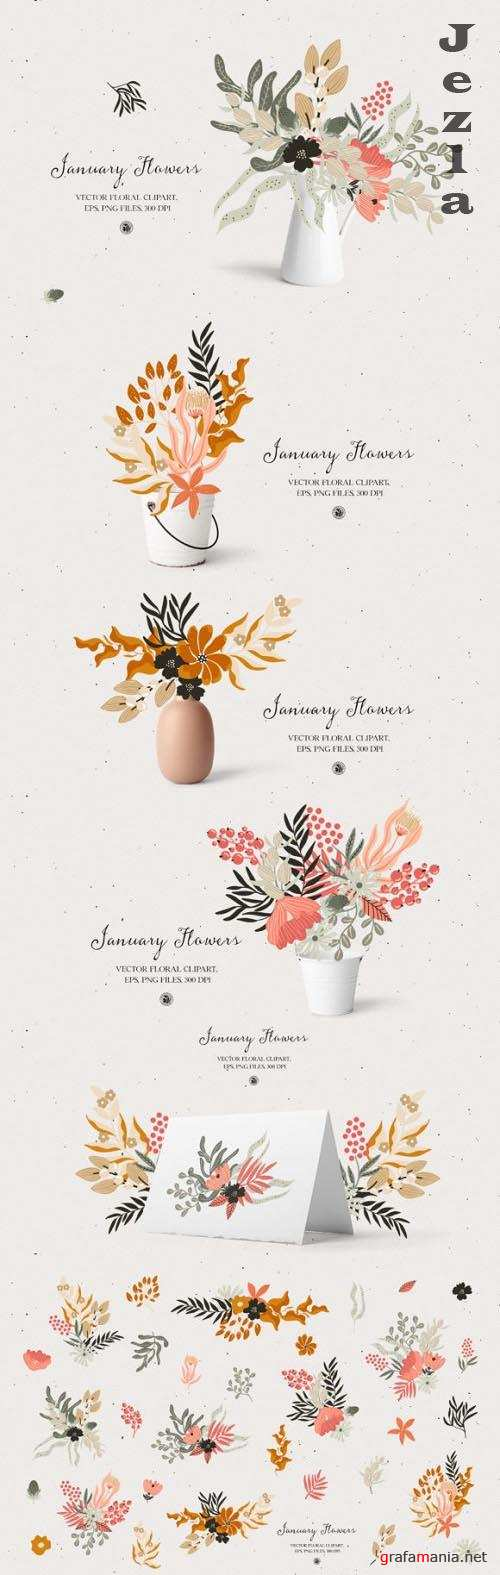 January Flowers - Floral Vector Set